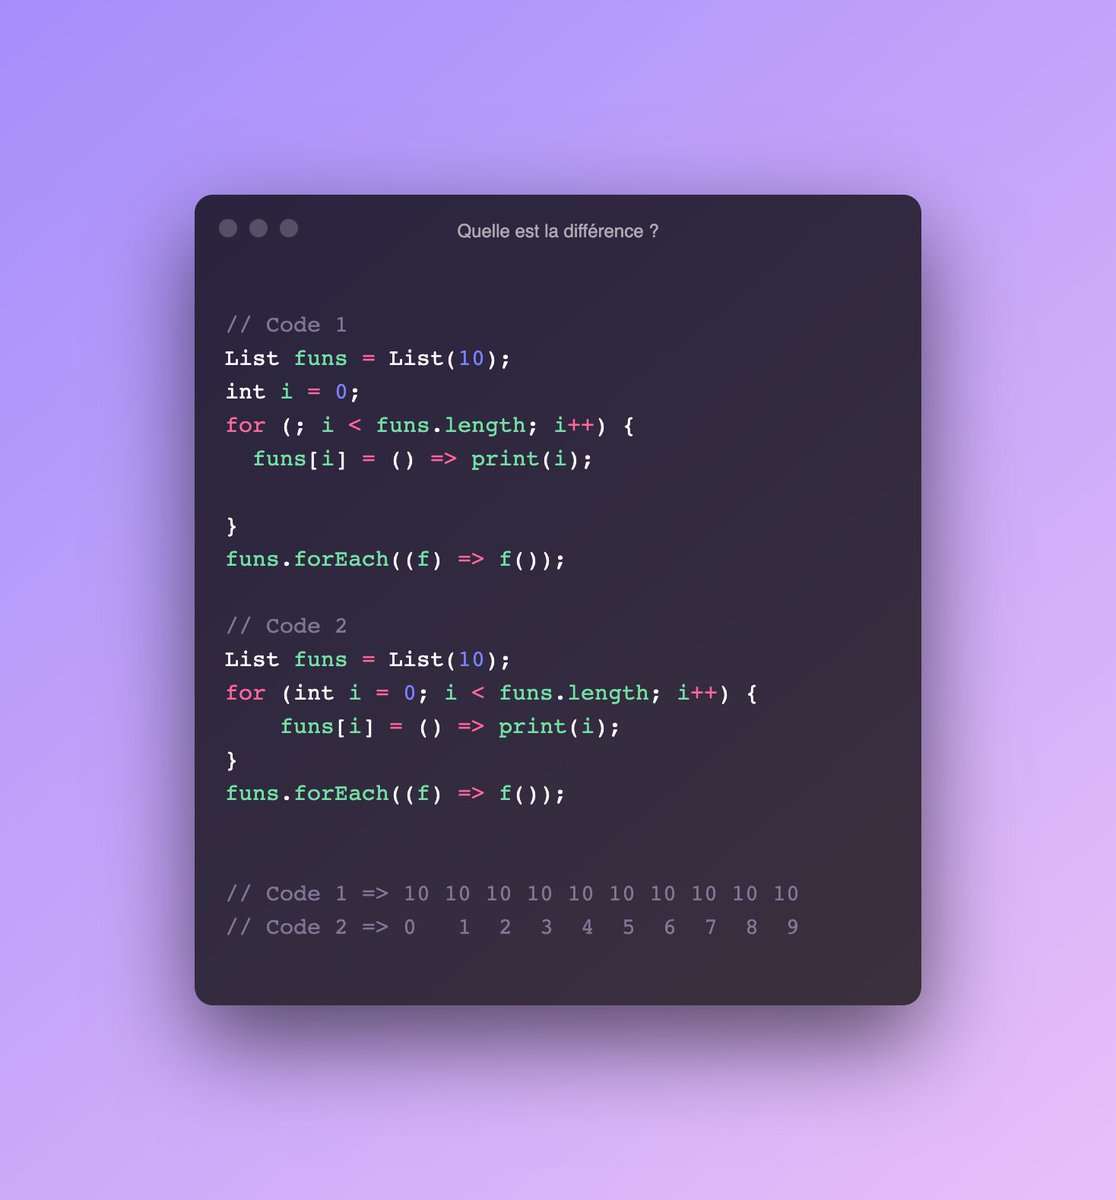 👨💻 Come on, we'll give you a quick challenge. You have two very similar codes and yet the results are different. Do you have any idea why?  #flutter #flutterchallenge #dartlang